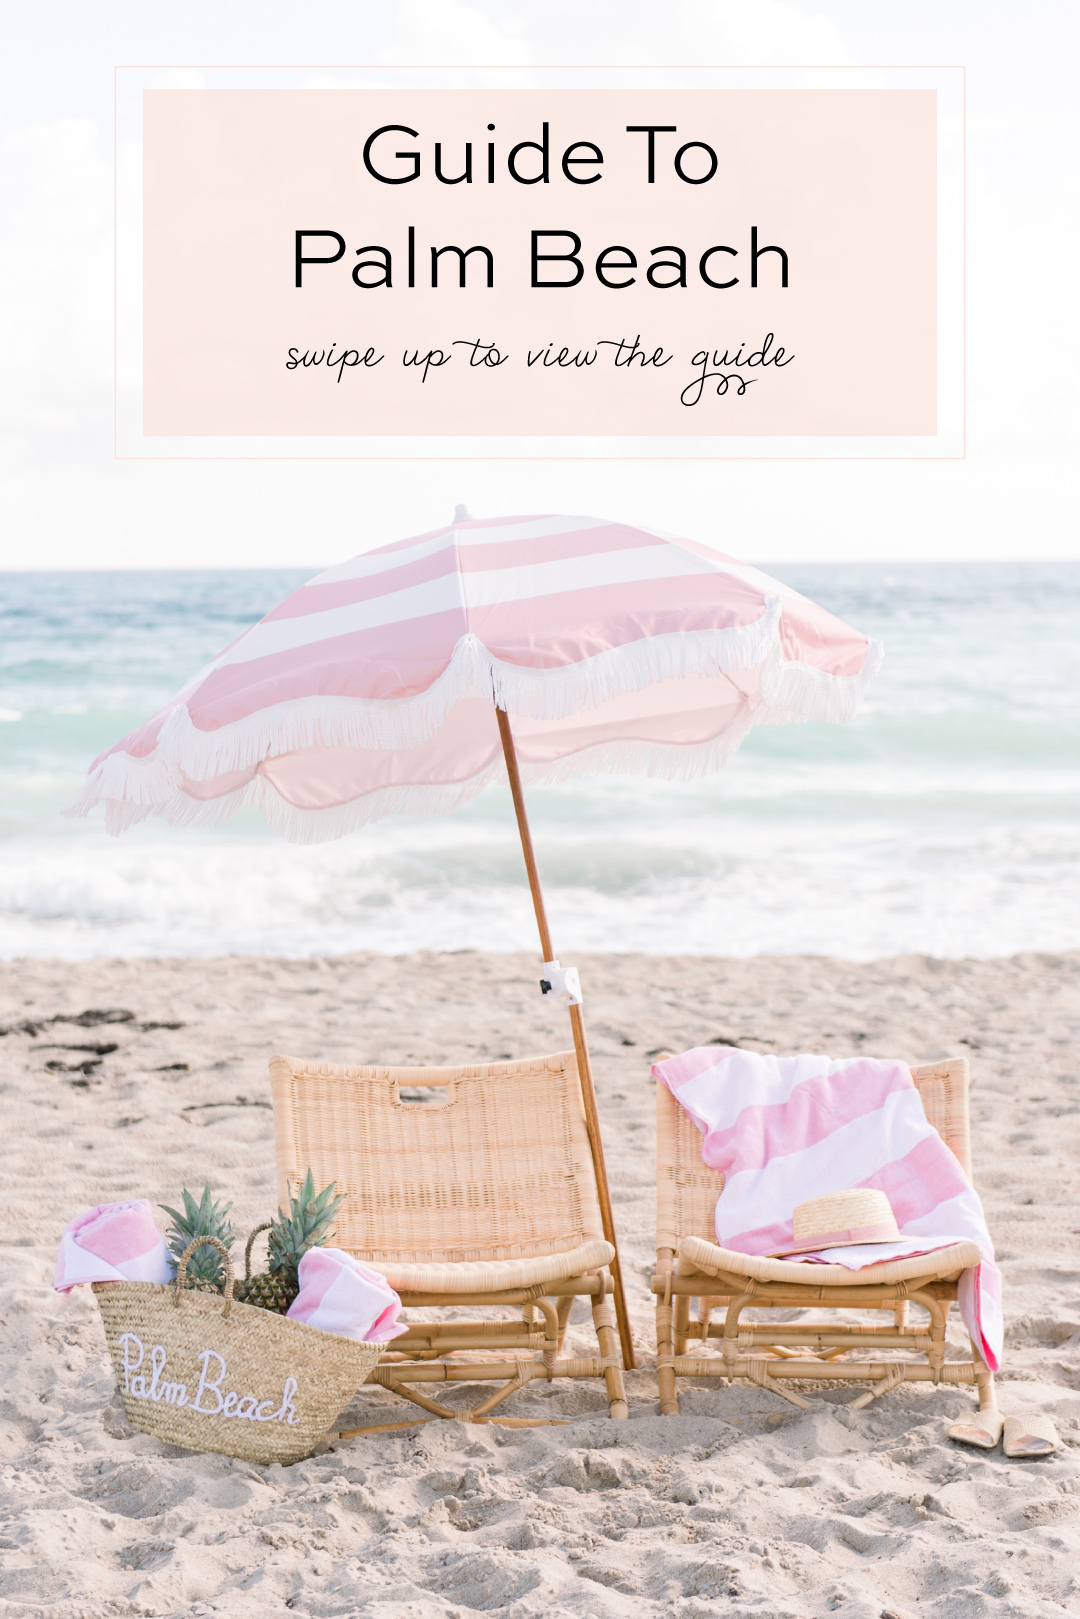 39d623da4a We have been sharing everything we love about Palm Beach on our blog and  social media since 2012